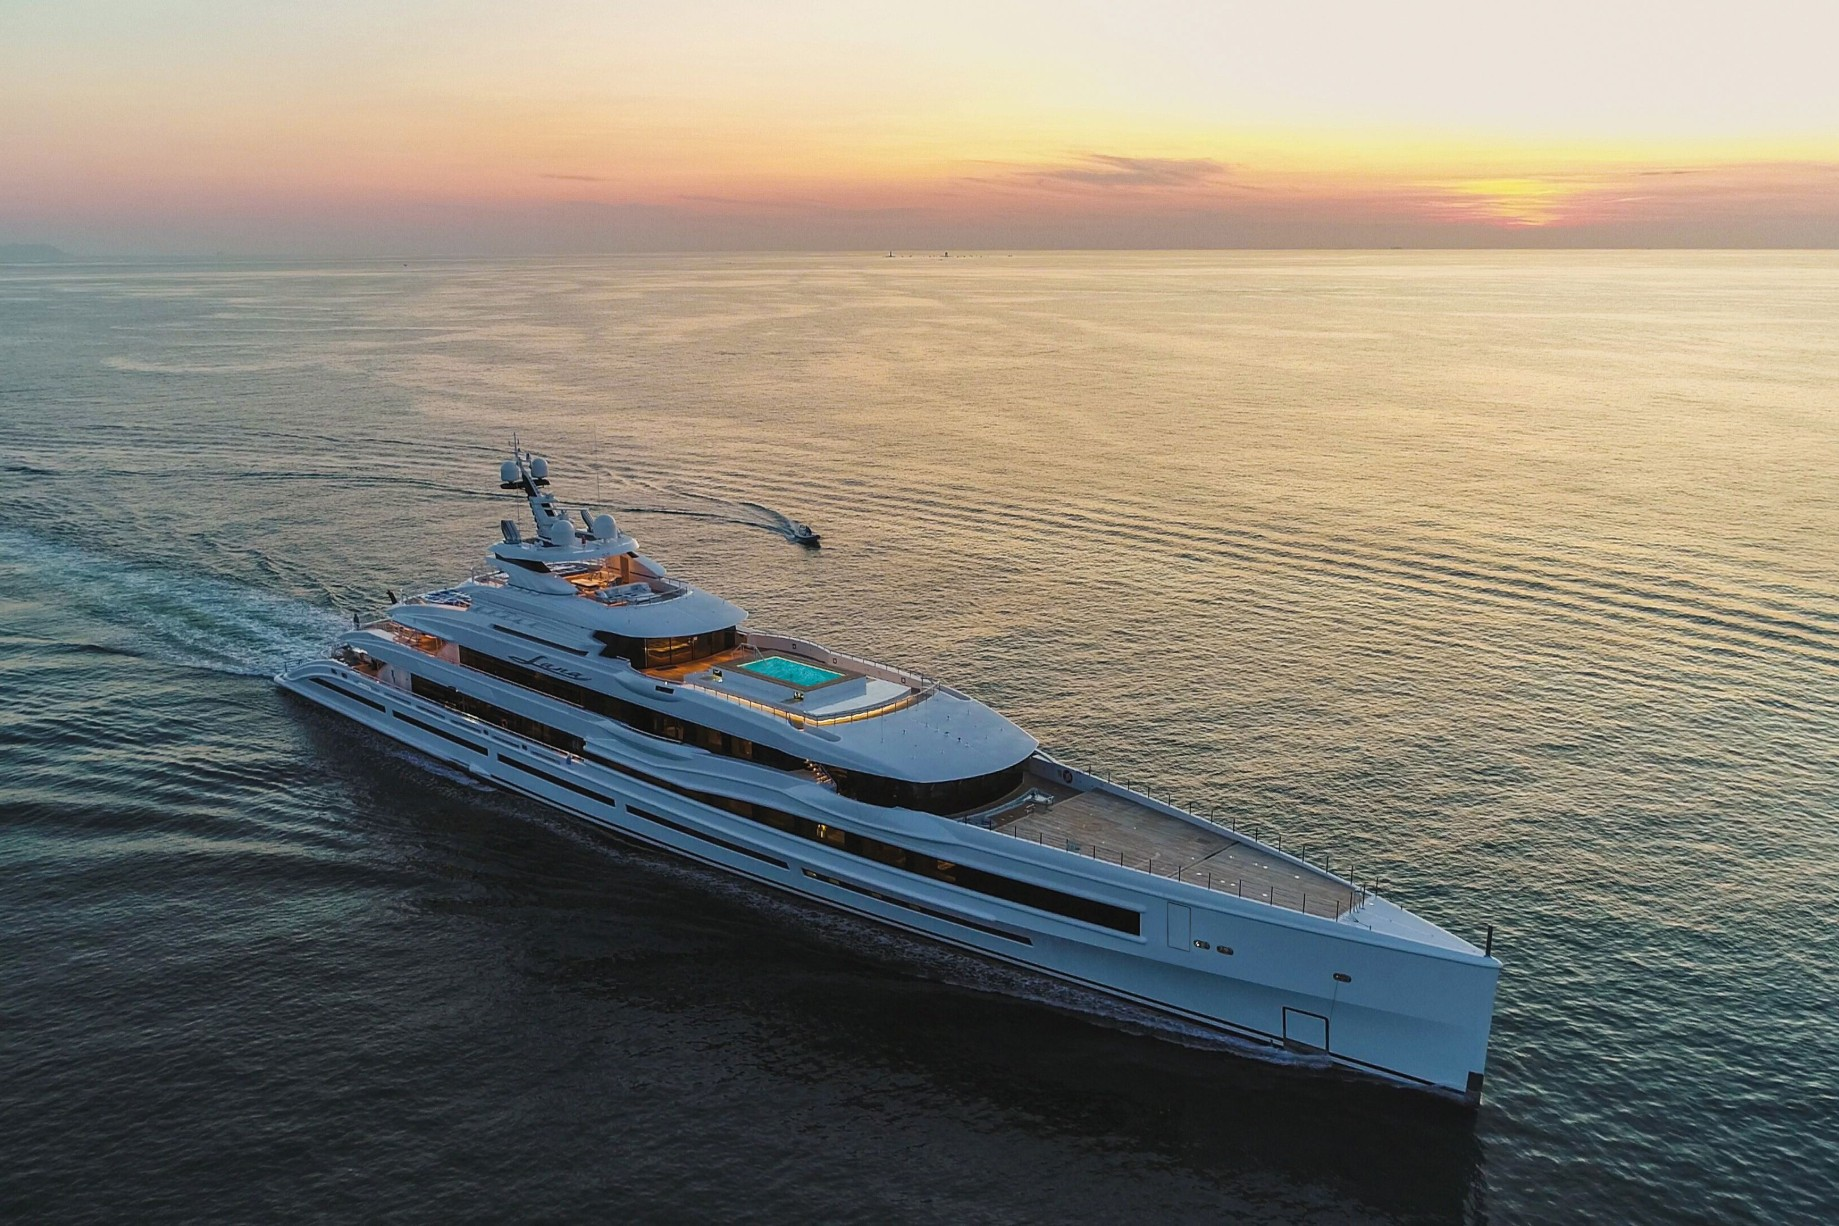 Best yacht brands and most expensive yachts.